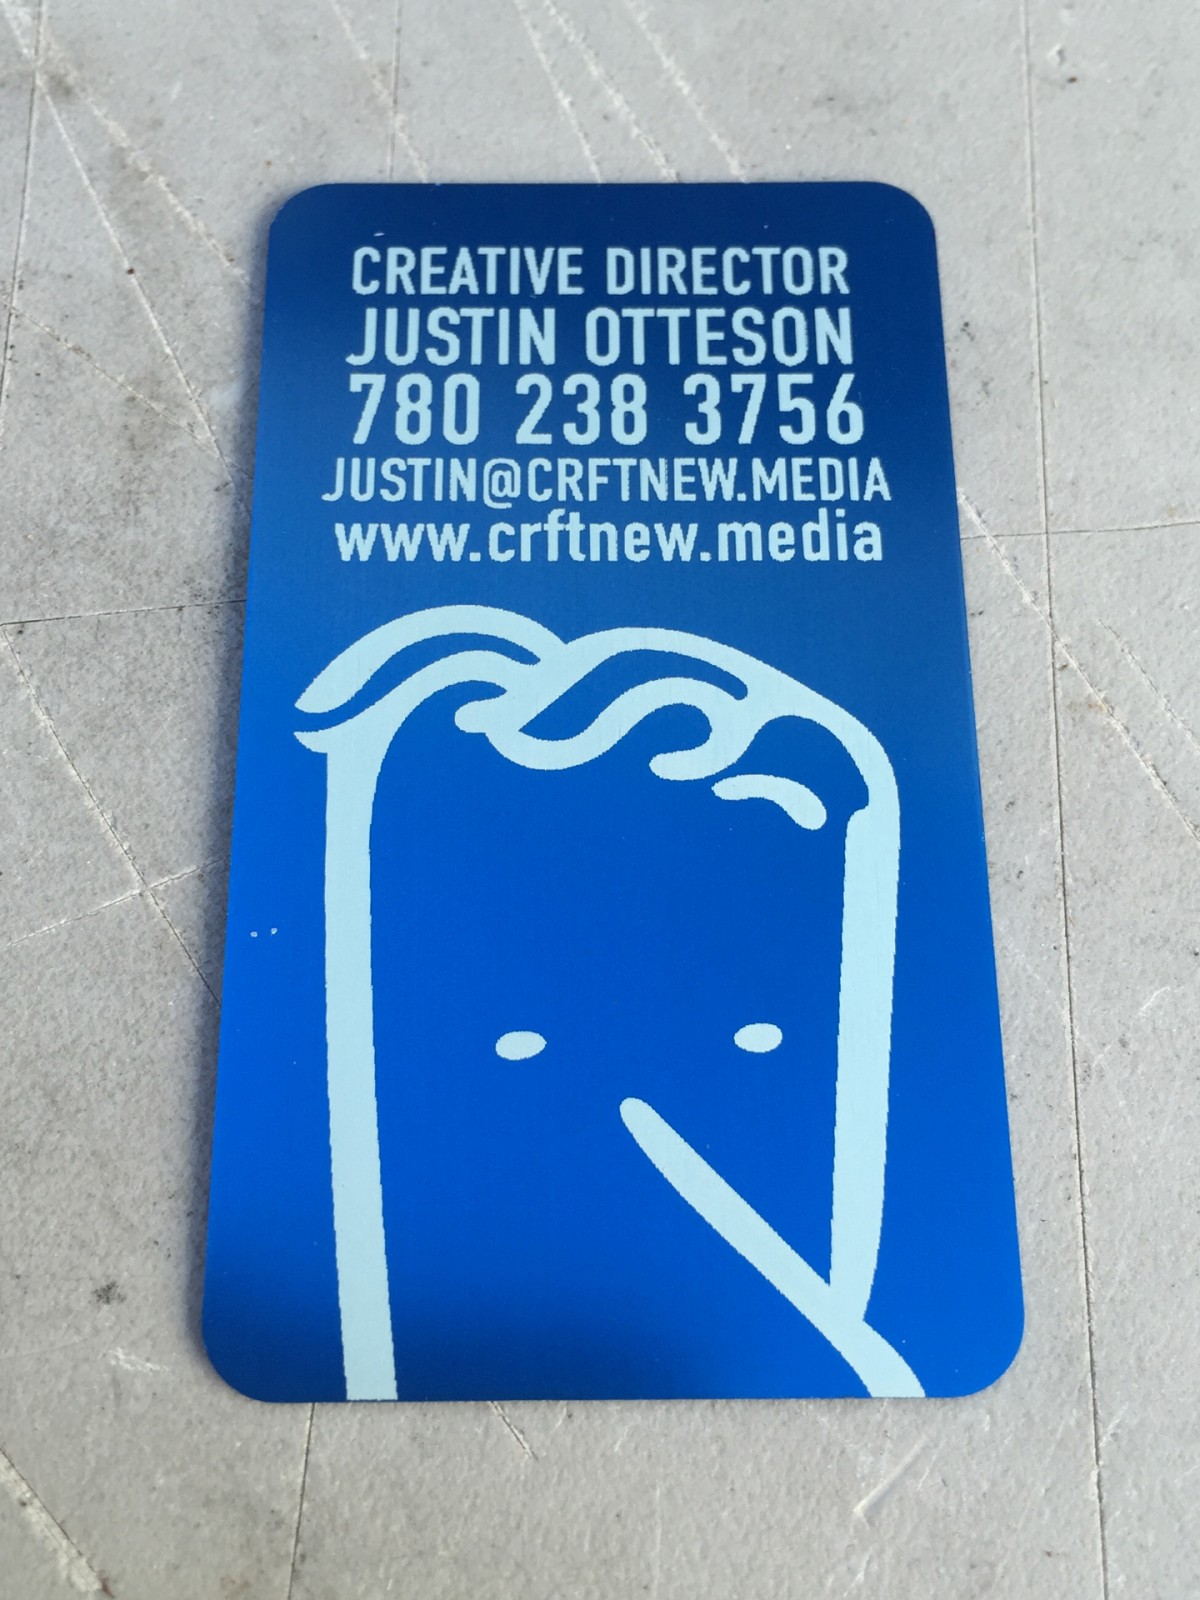 Studio eQ 50 Laser Etched Thin Blue Metal Business Cards